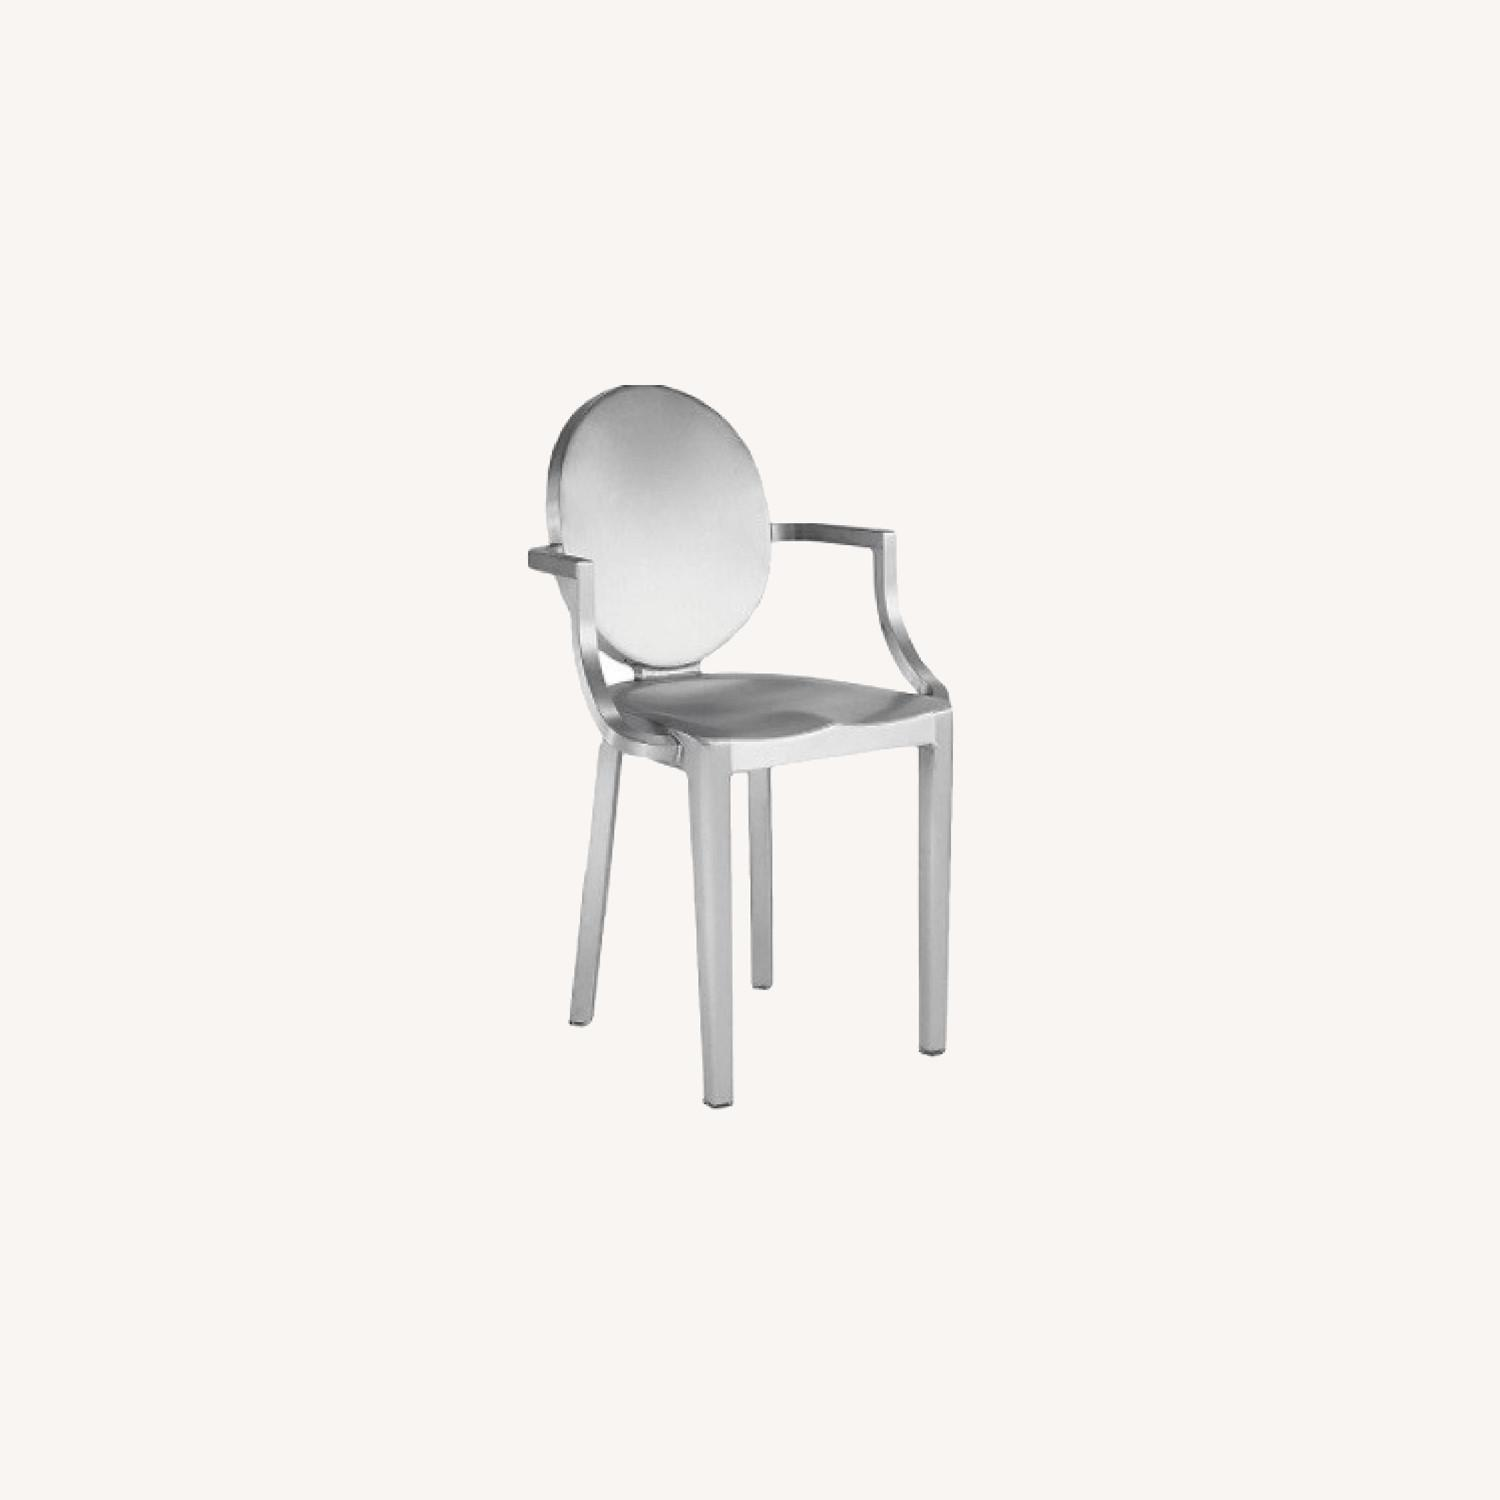 Emeco Kong Chairs set by P. Starck in Brushed Alu - image-0